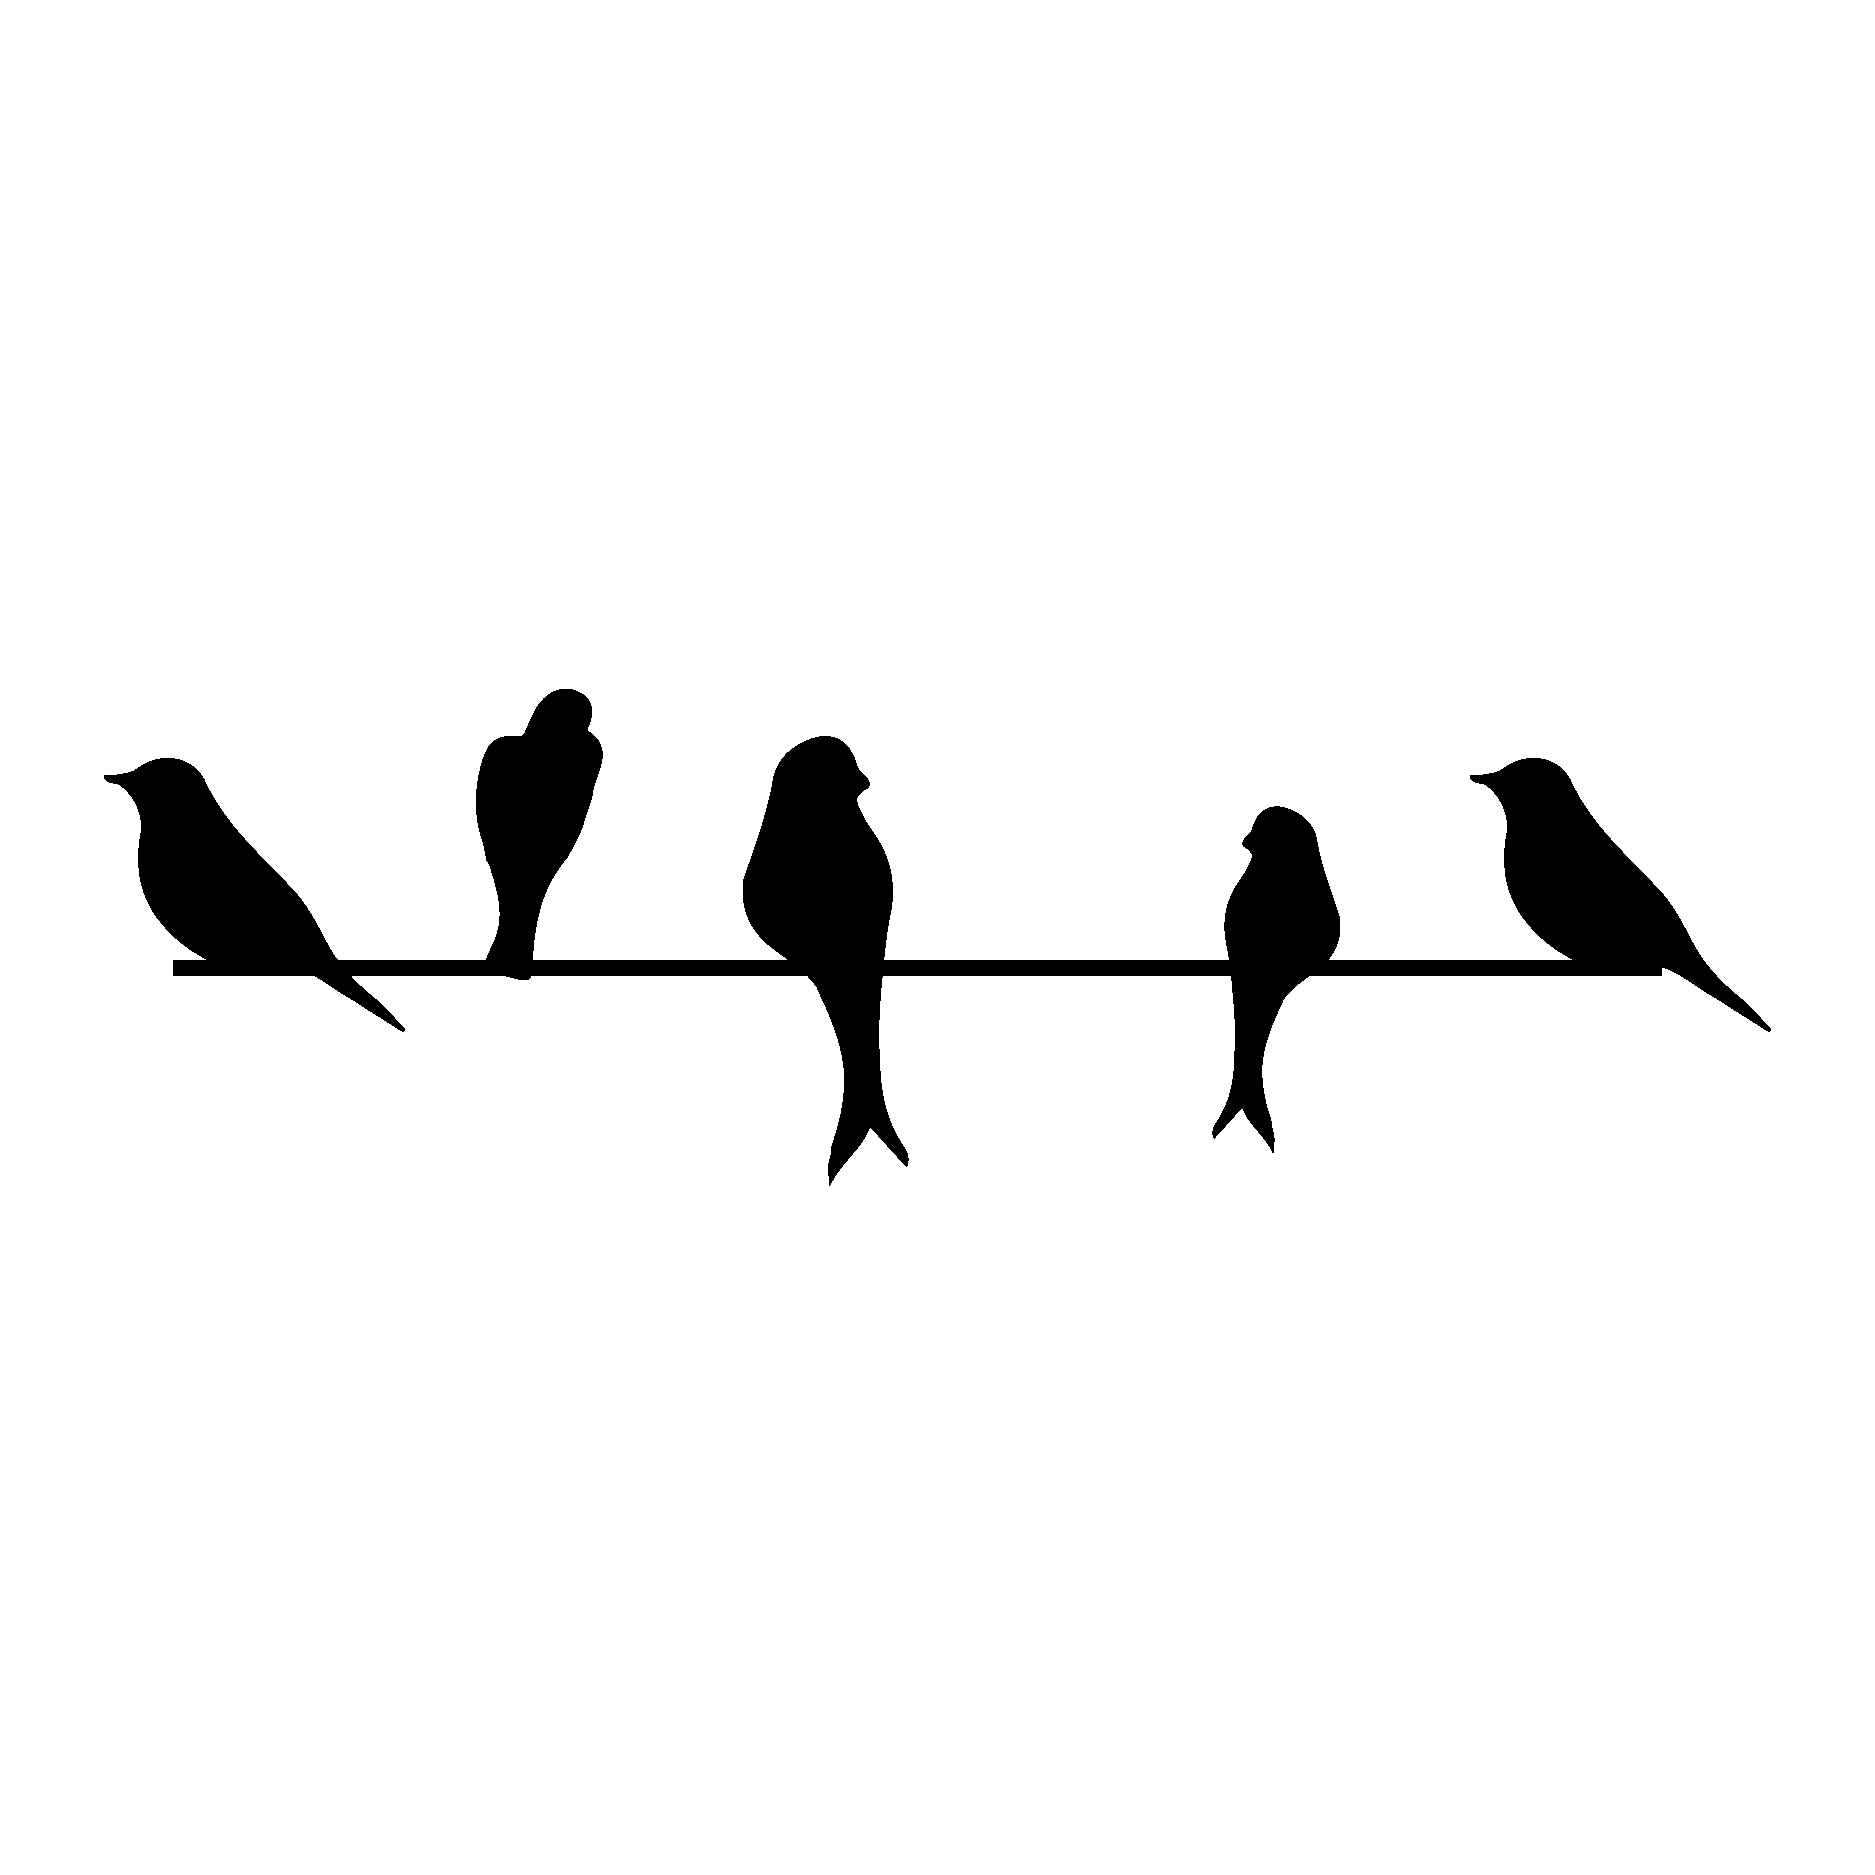 Birds On A Wire Wall Quotes Wall Art Decal Wallquotes Com